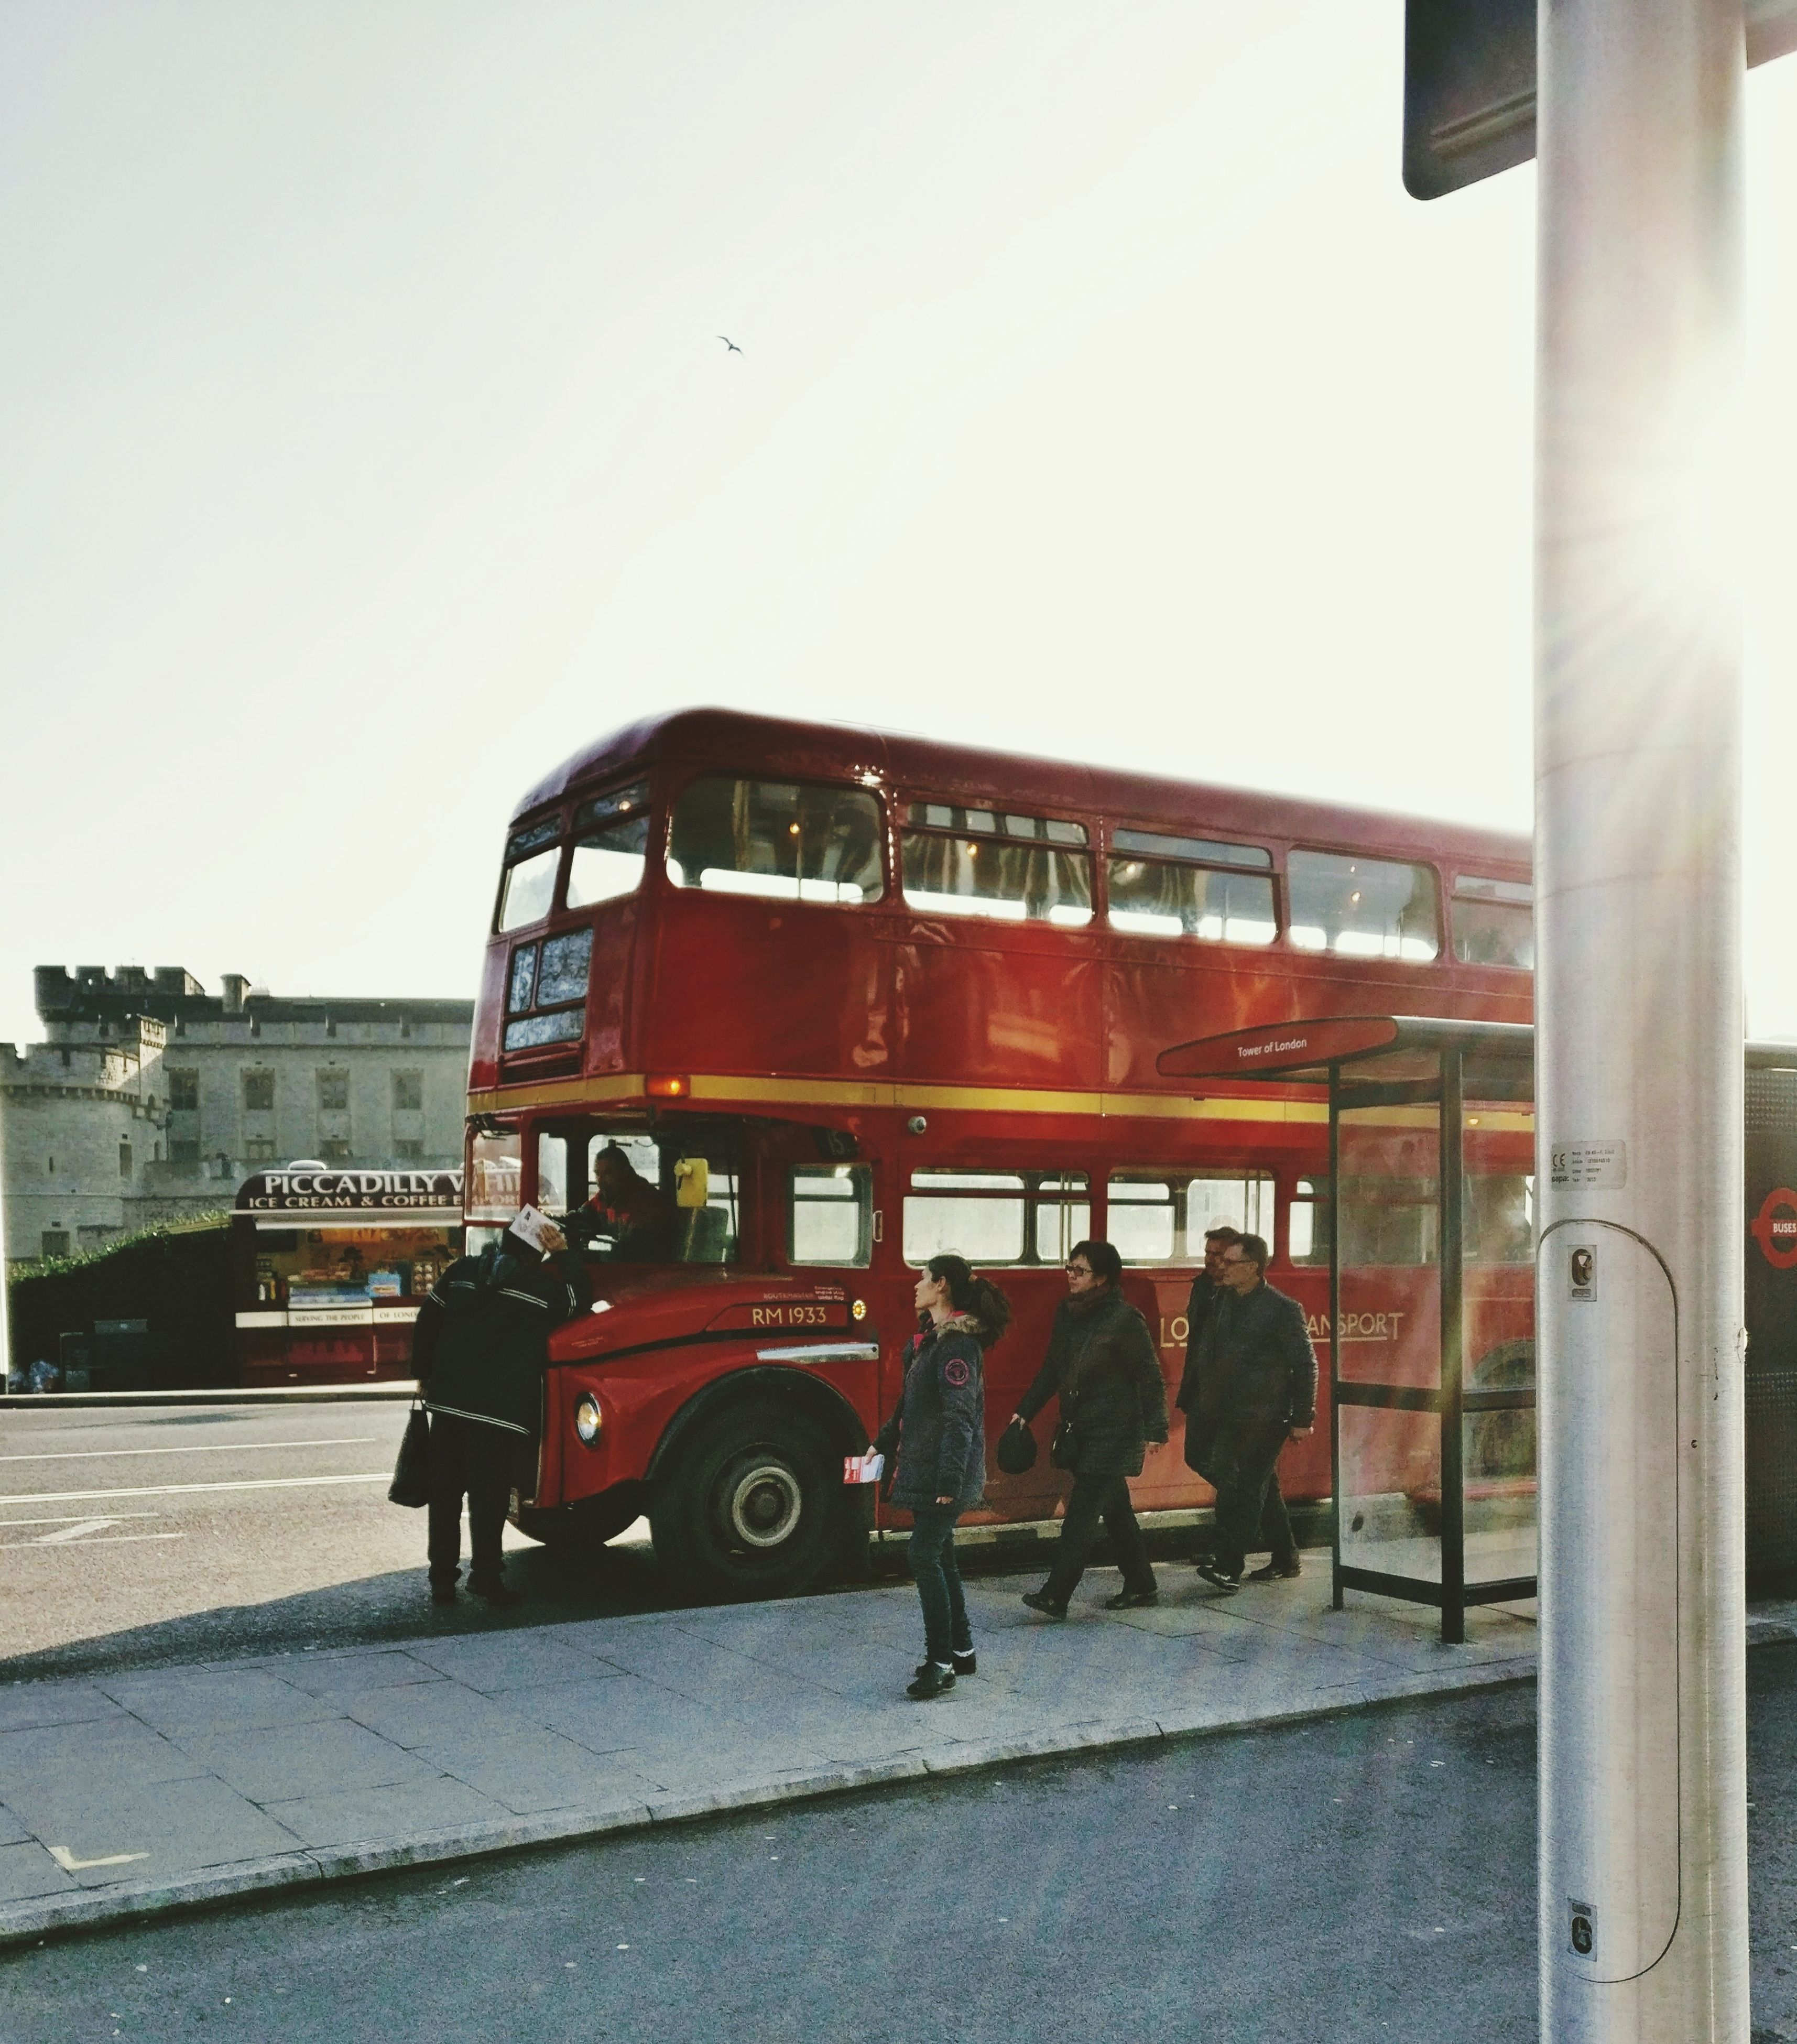 transportation, mode of transport, rescue, fire engine, no people, day, public transportation, sky, outdoors, architecture